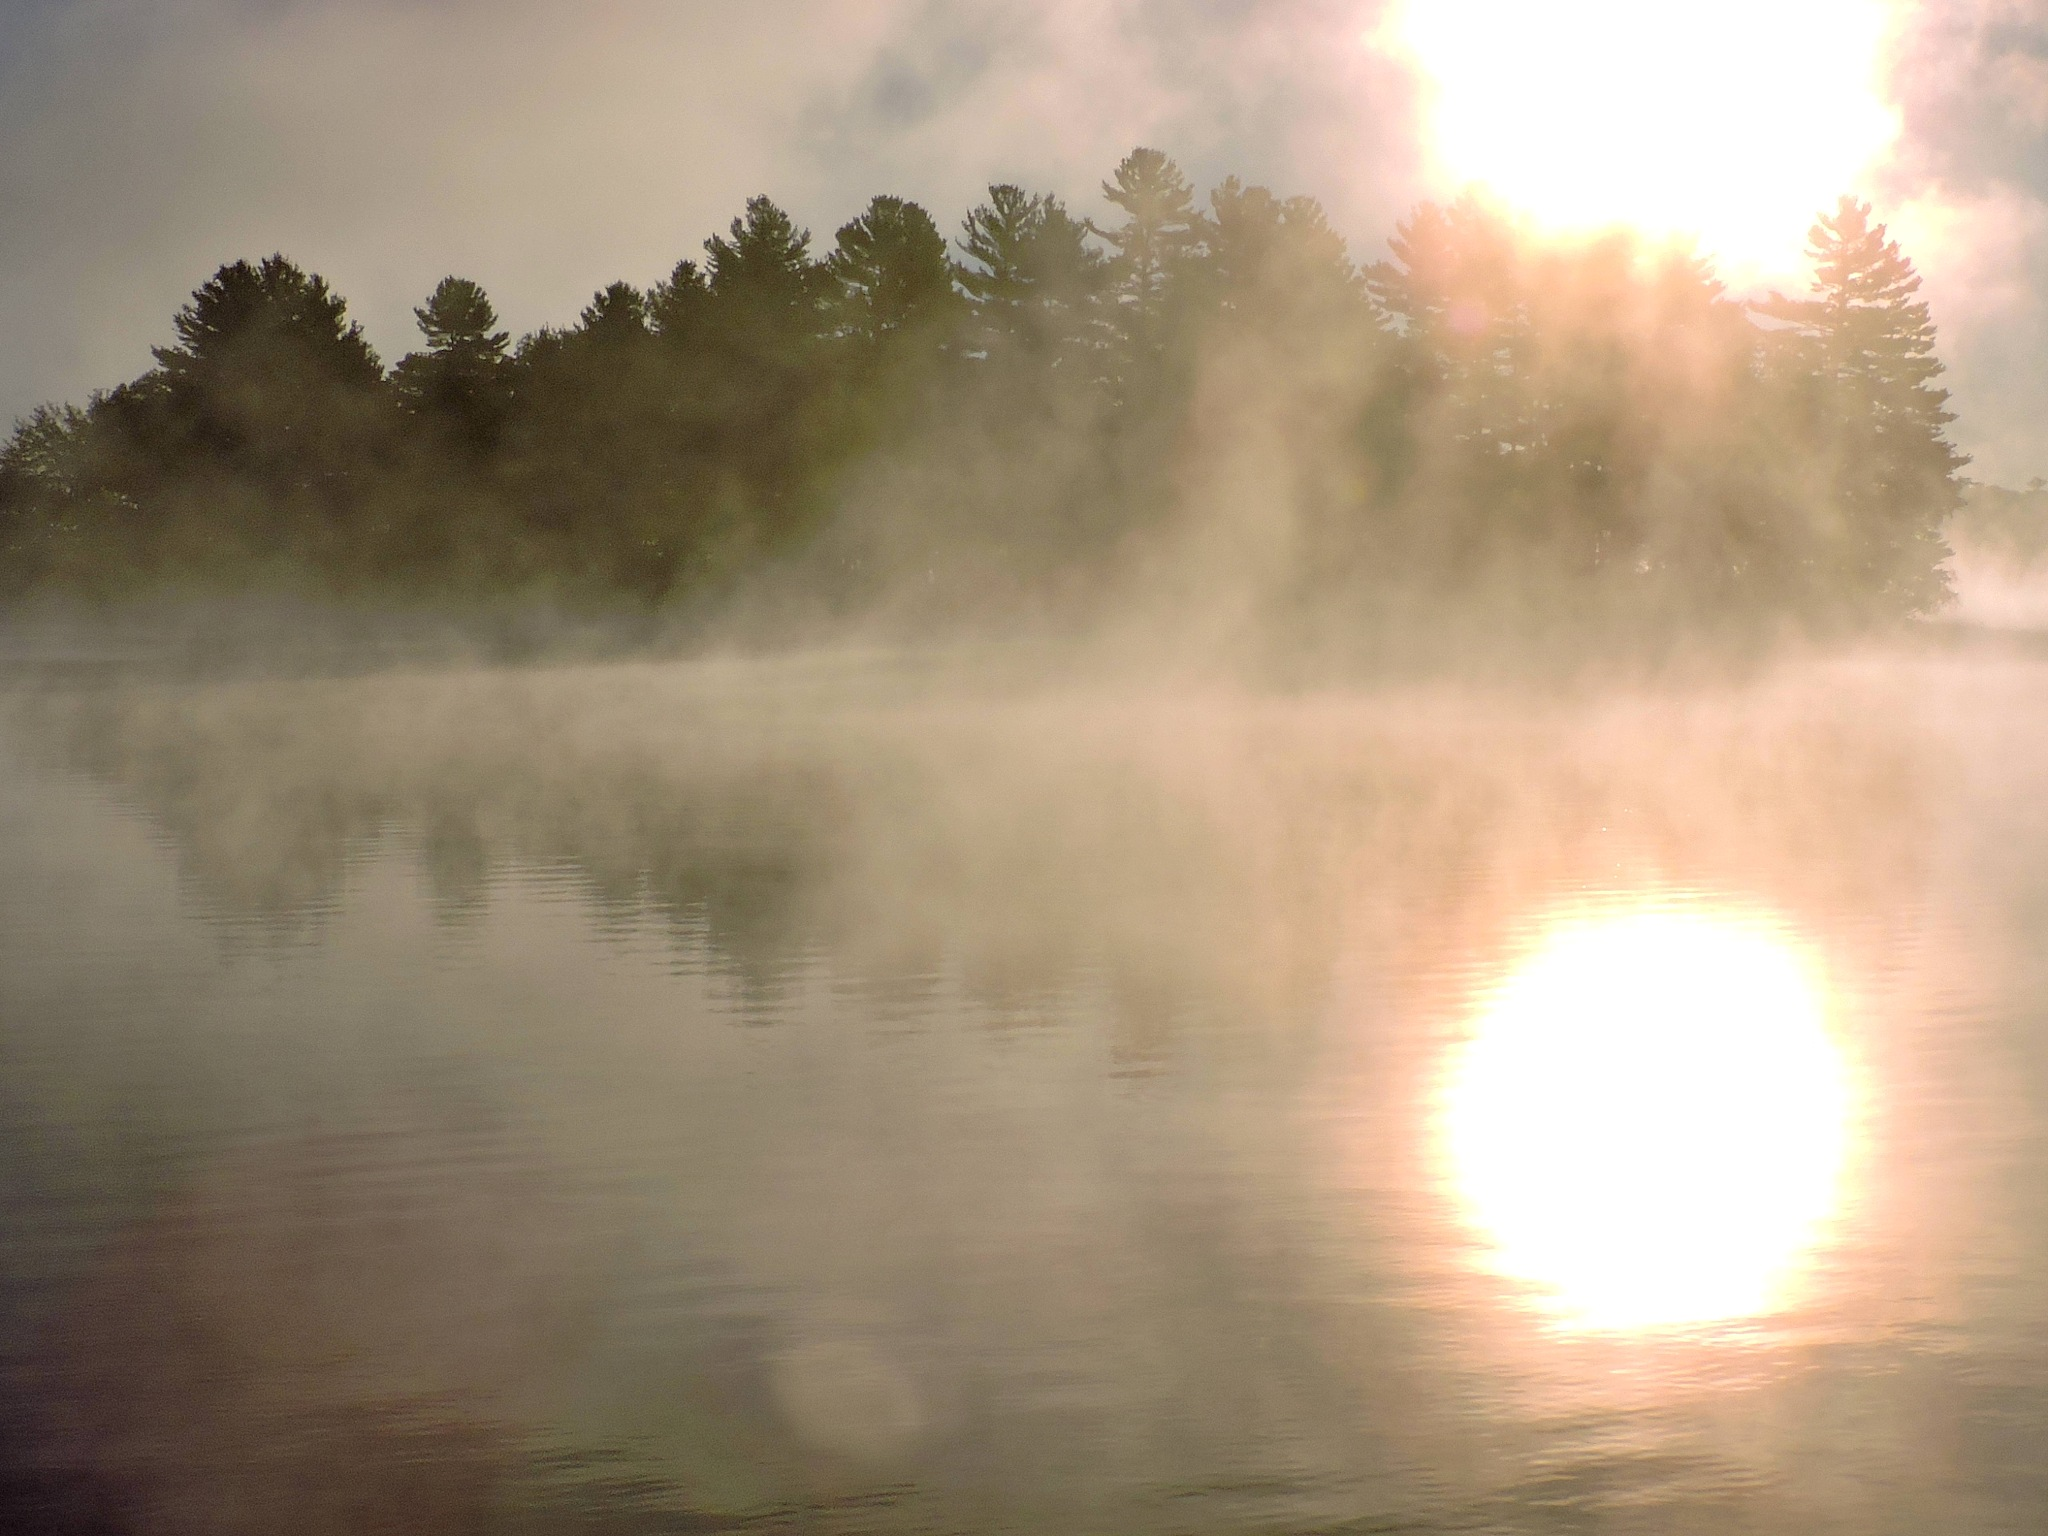 Sunrise in the mist by G. A. McComas